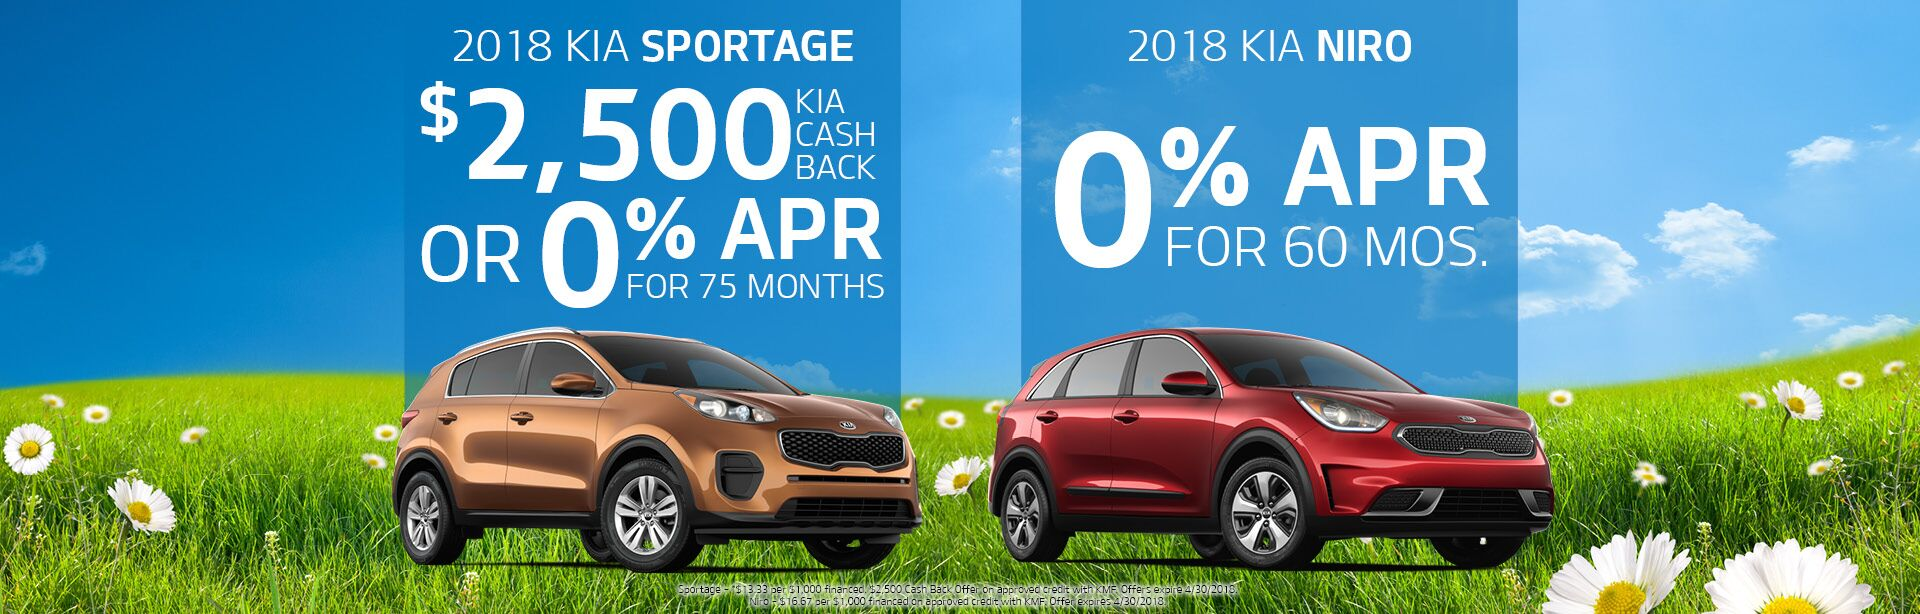 Sportage & Niro Offers